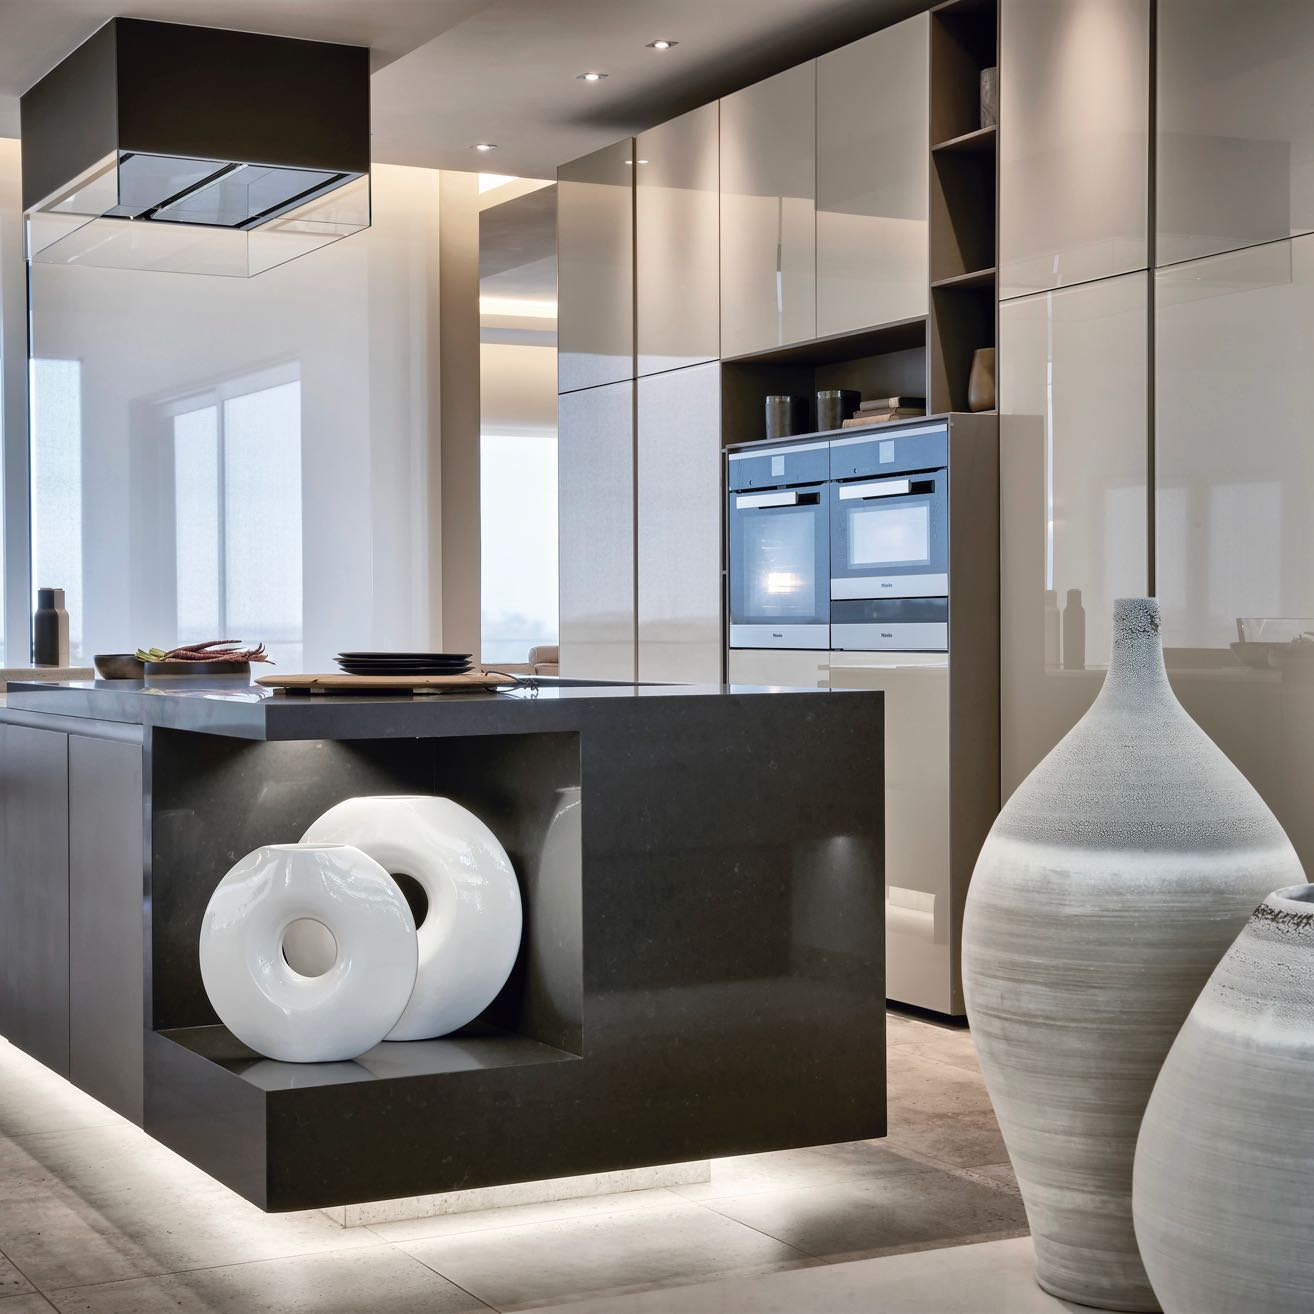 Blu_line Is A High-end Kitchen Design Company Based In